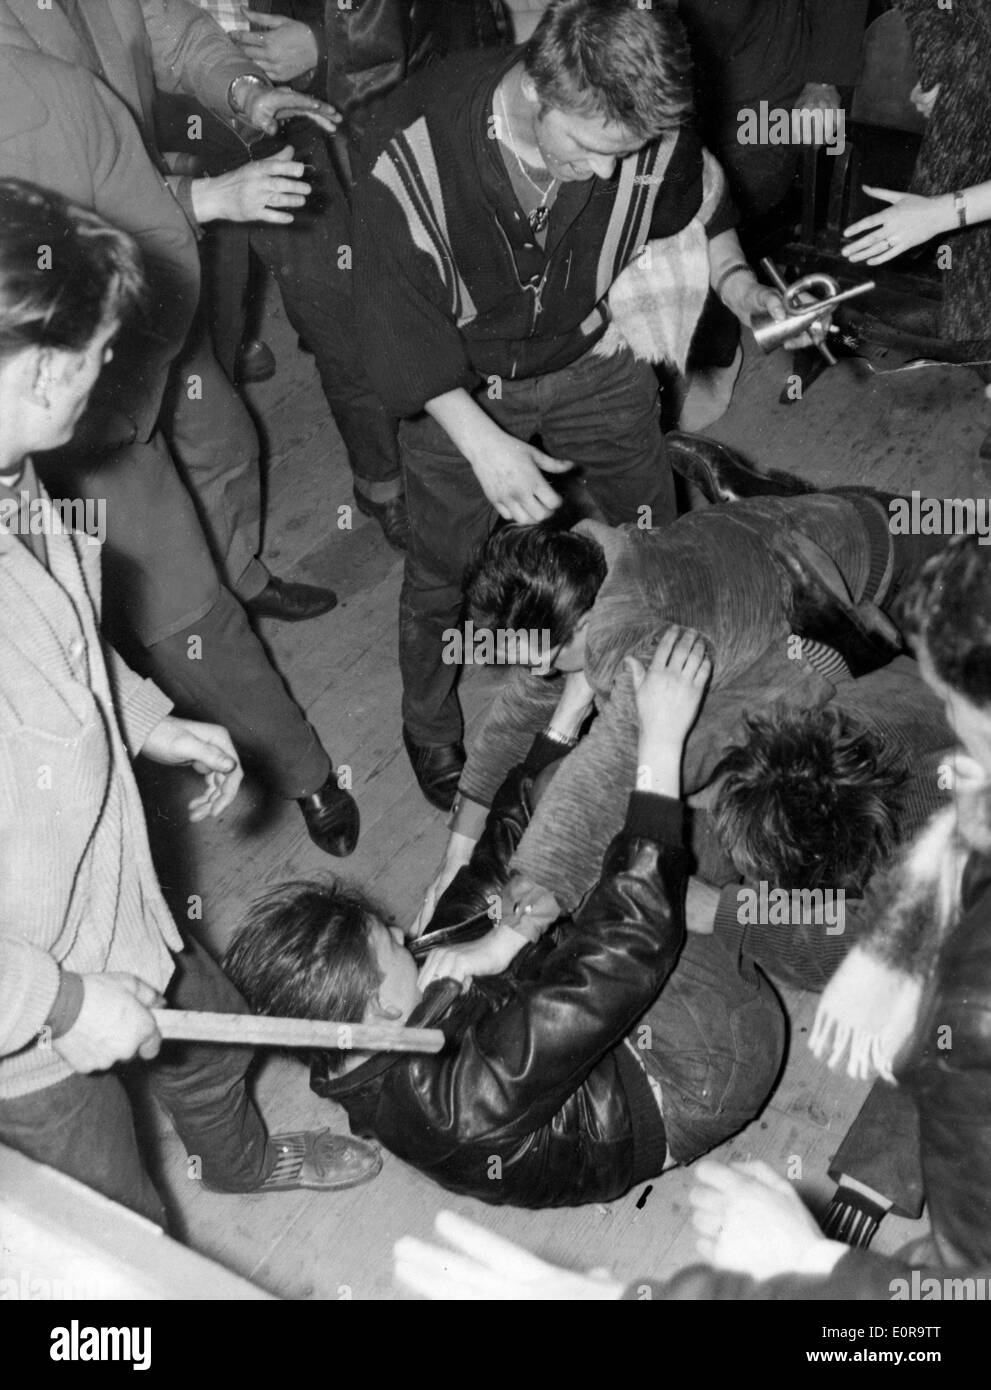 Fight breaks out at Bill Haley and the Comets concert - Stock Image